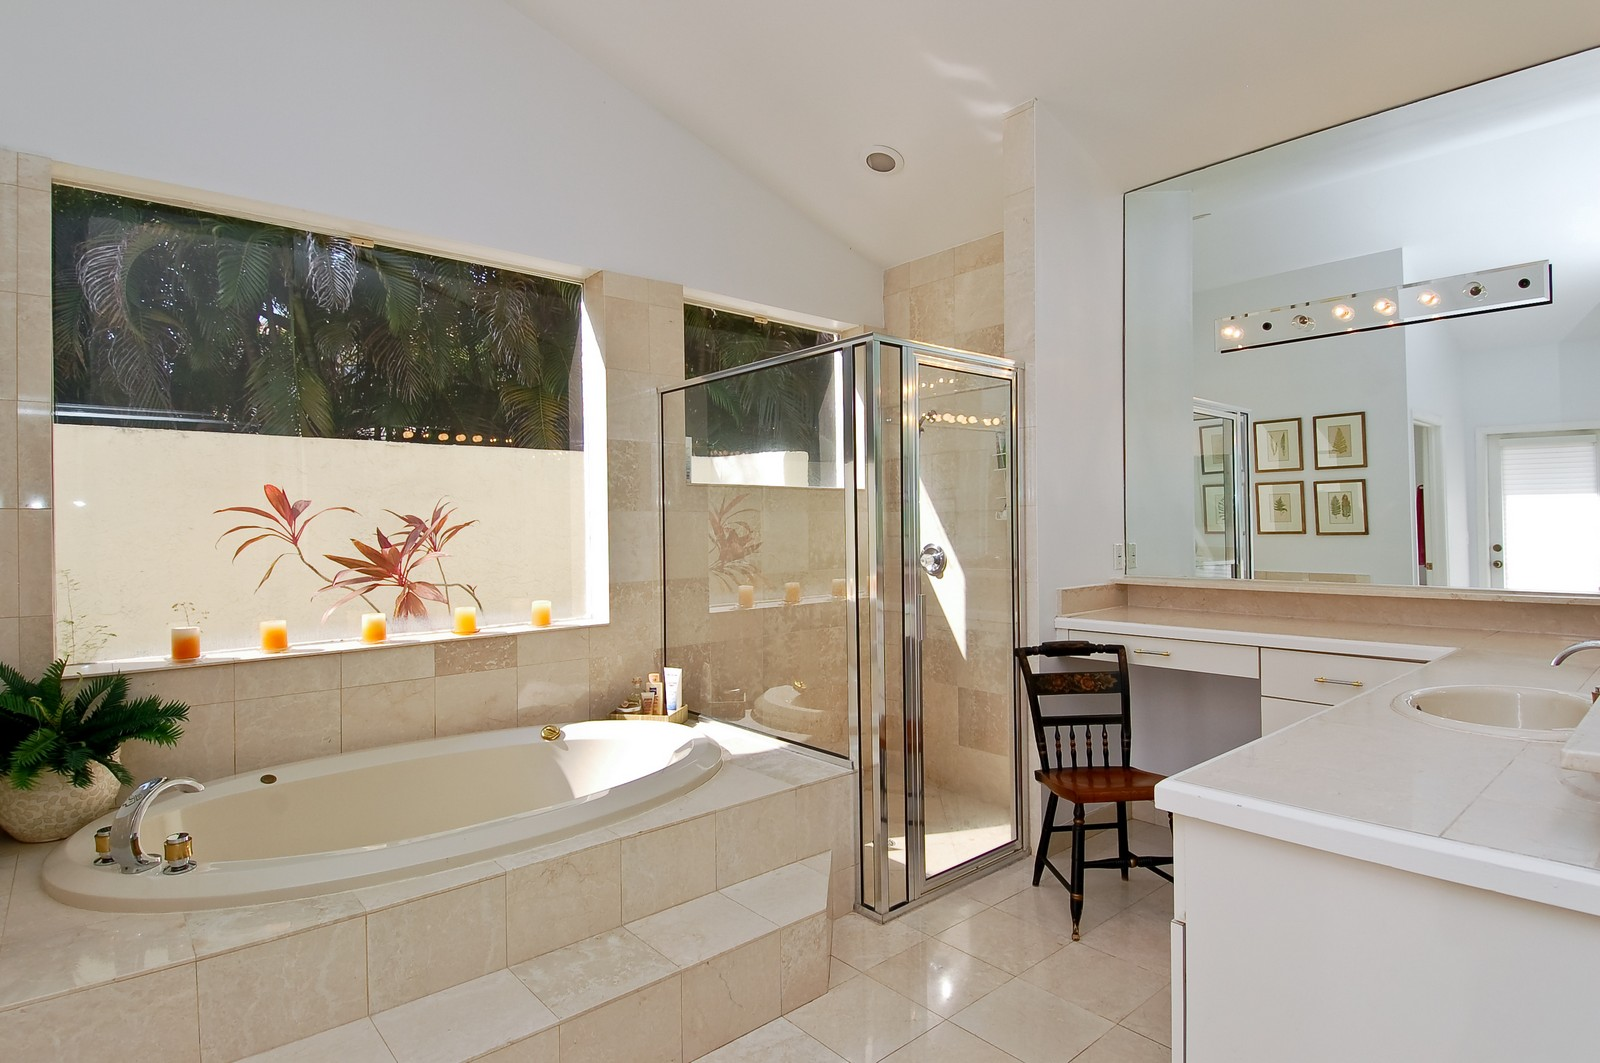 Real Estate Photography - 6329 NW 23rd Way, Boca Raton, FL, 33496 - Master Bathroom